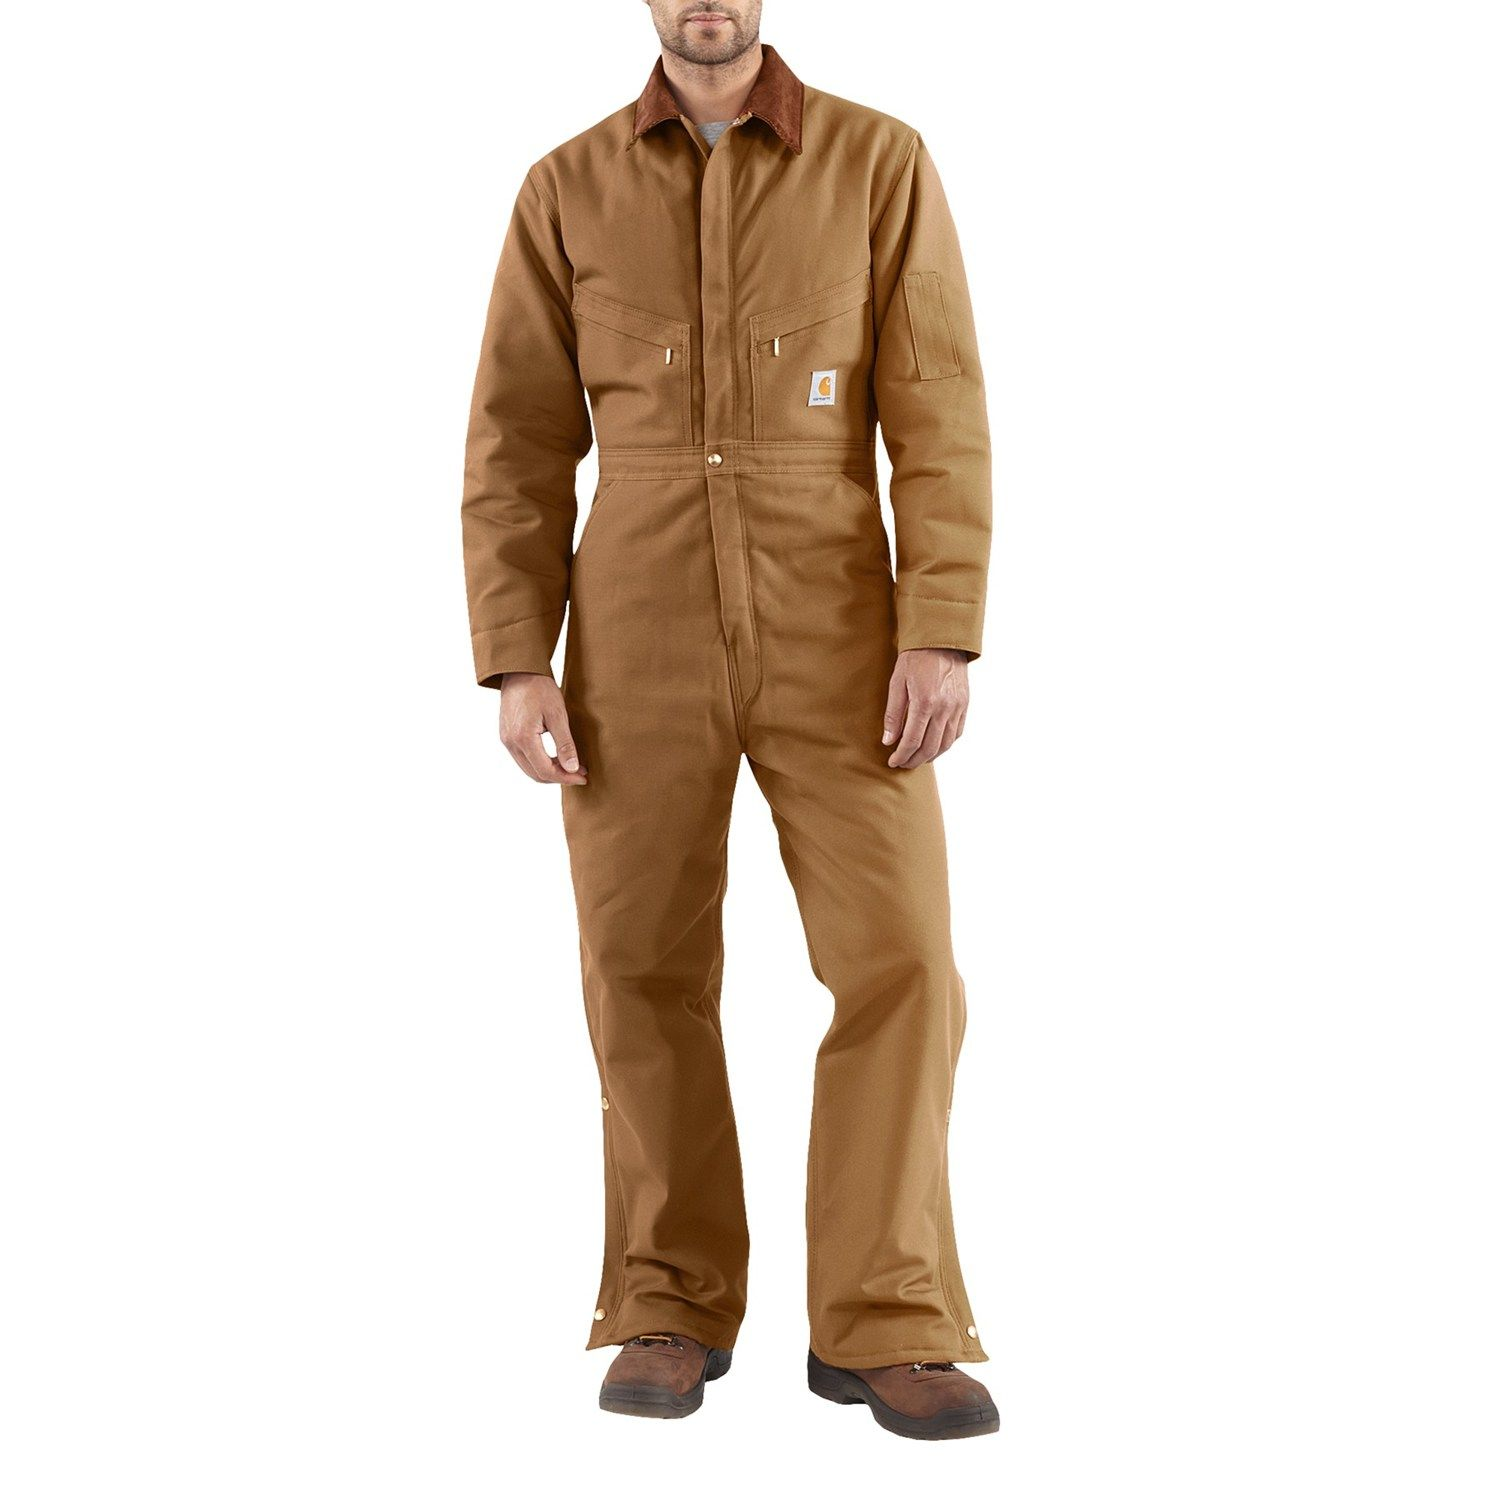 Carhartt X01 Quilt Lined Duck Coveralls Insulated Factory Seconds For Men Mens Coveralls Insulated Coveralls Carhartt [ 1500 x 1500 Pixel ]